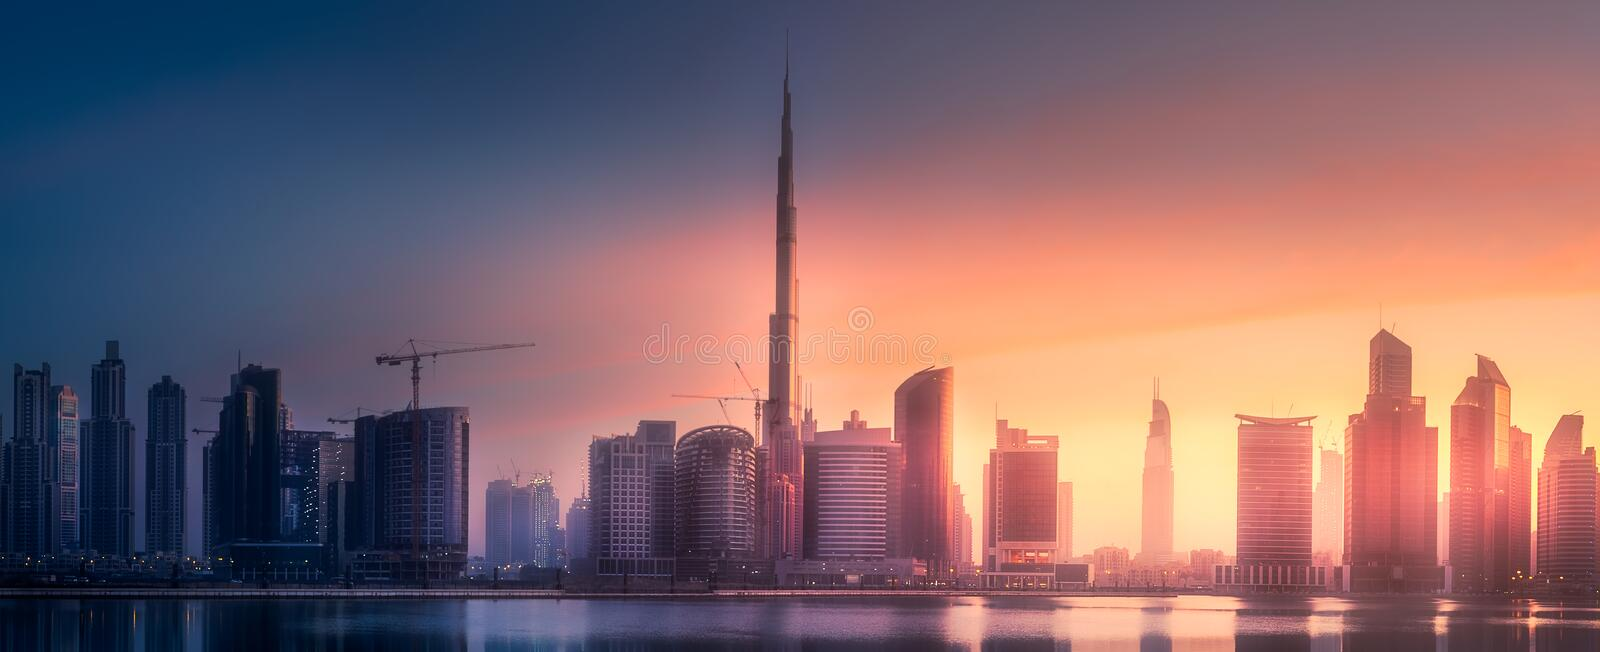 Download Panoramic View Of Dubai Business Bay, UAE Stock Image - Image of center, building: 110448407